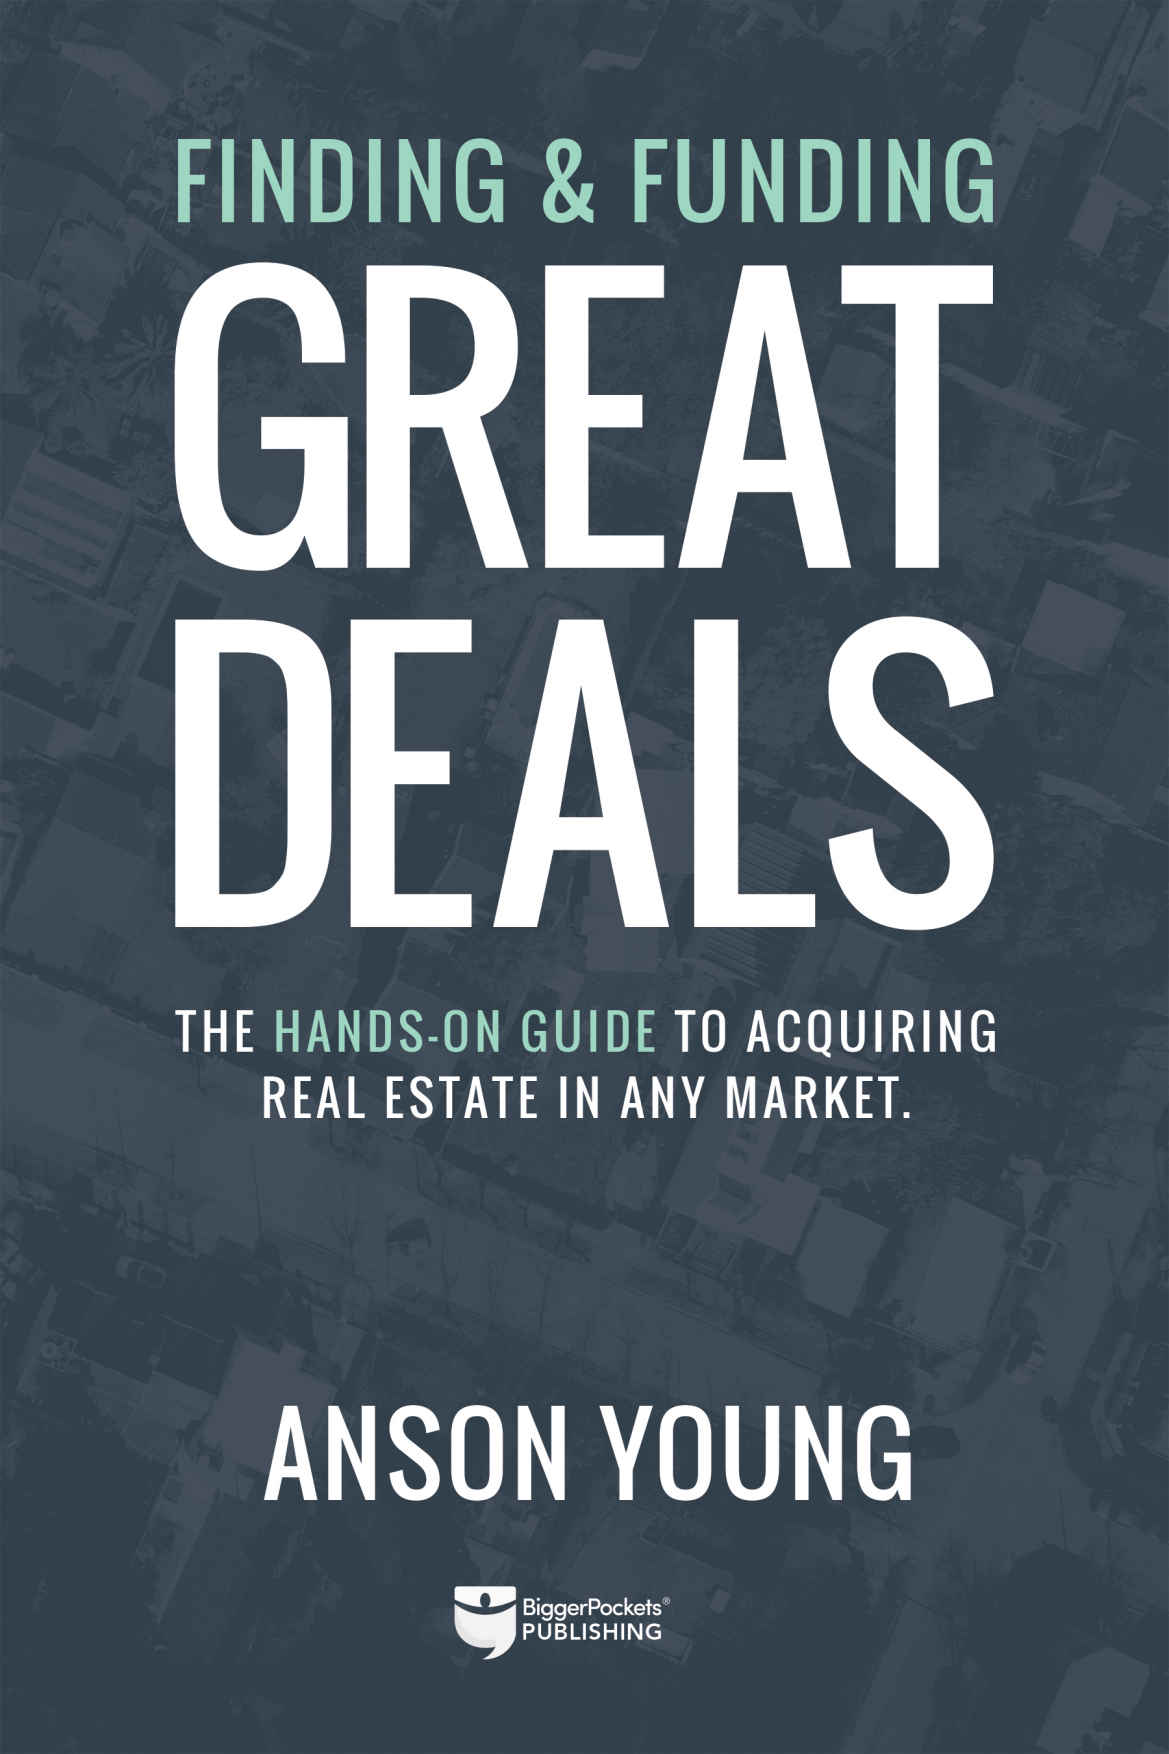 Finding and Funding Great Deals